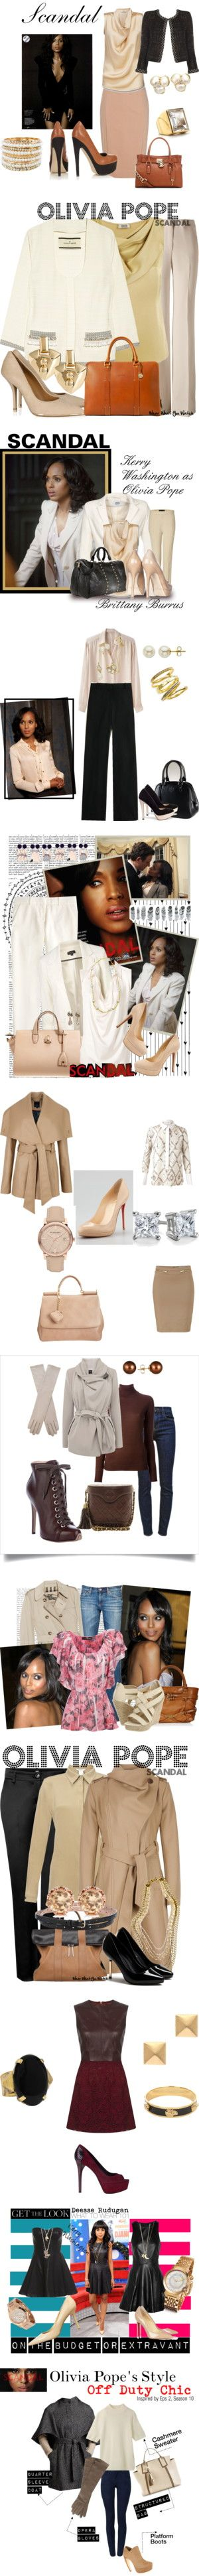 """Kerry Washington (Olivia Pope) Styles"" by fashionexplorer-890 on Polyvore. Absolutely fabulous."